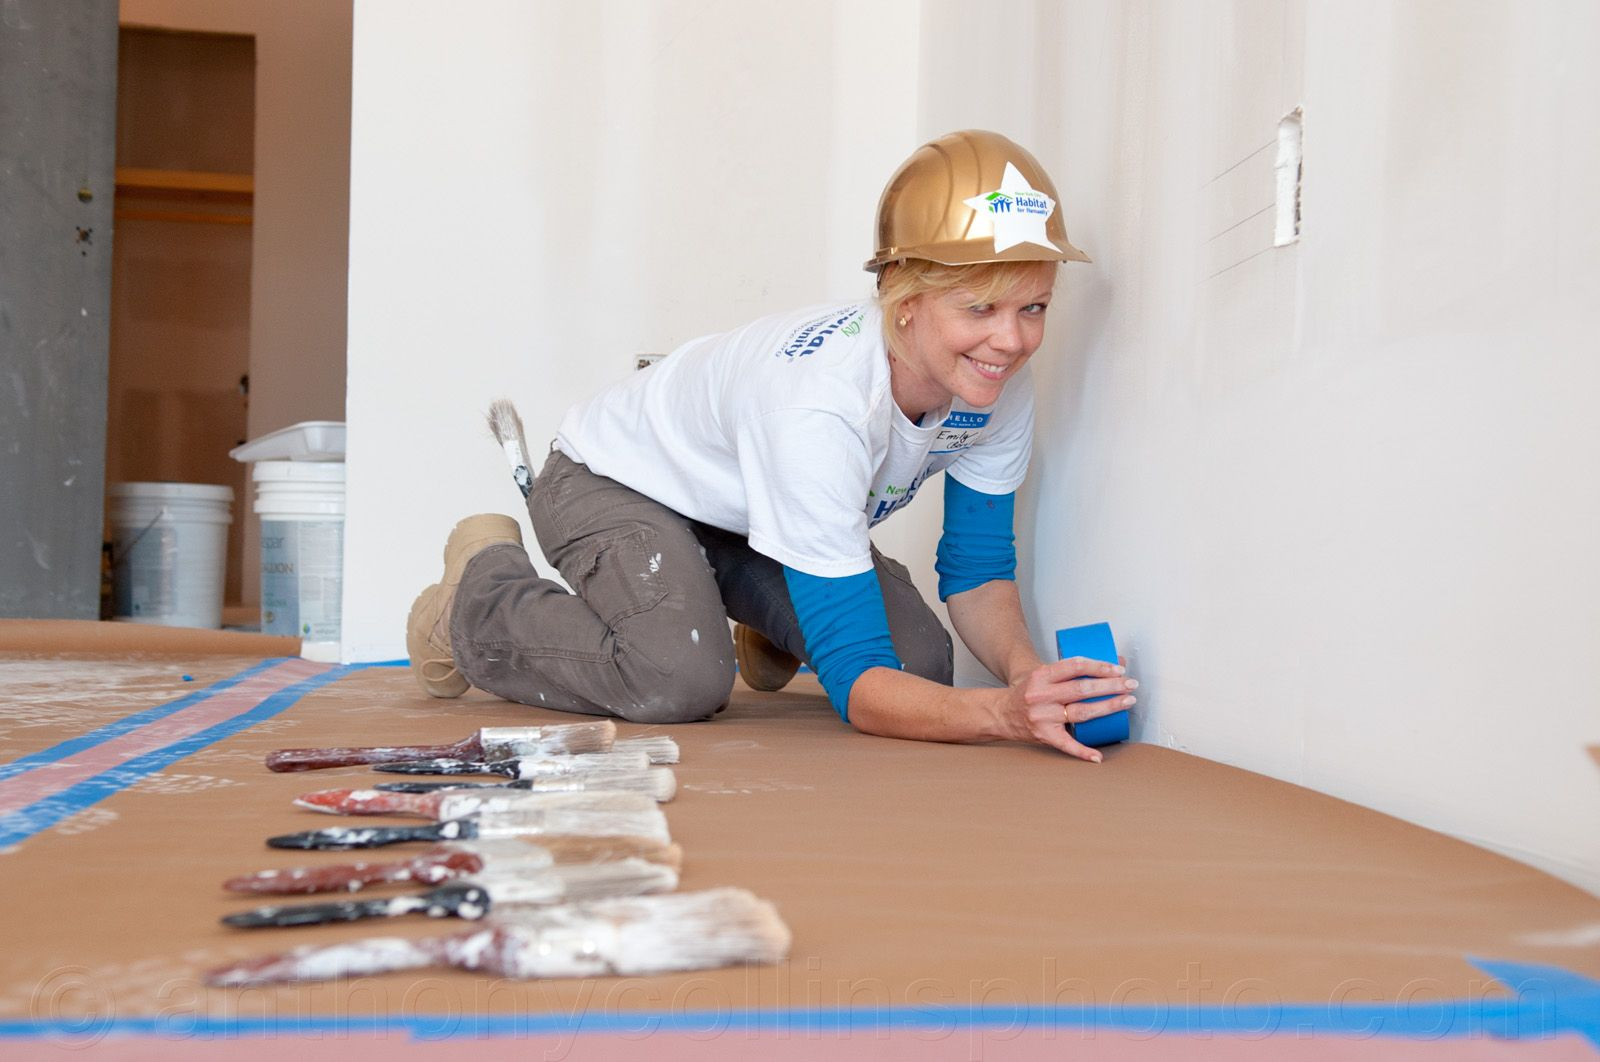 Emily Bergl laying down some tape at Broadway Builds #HabitatNYC Learn more about Habitat NYC at Habitatnyc.org